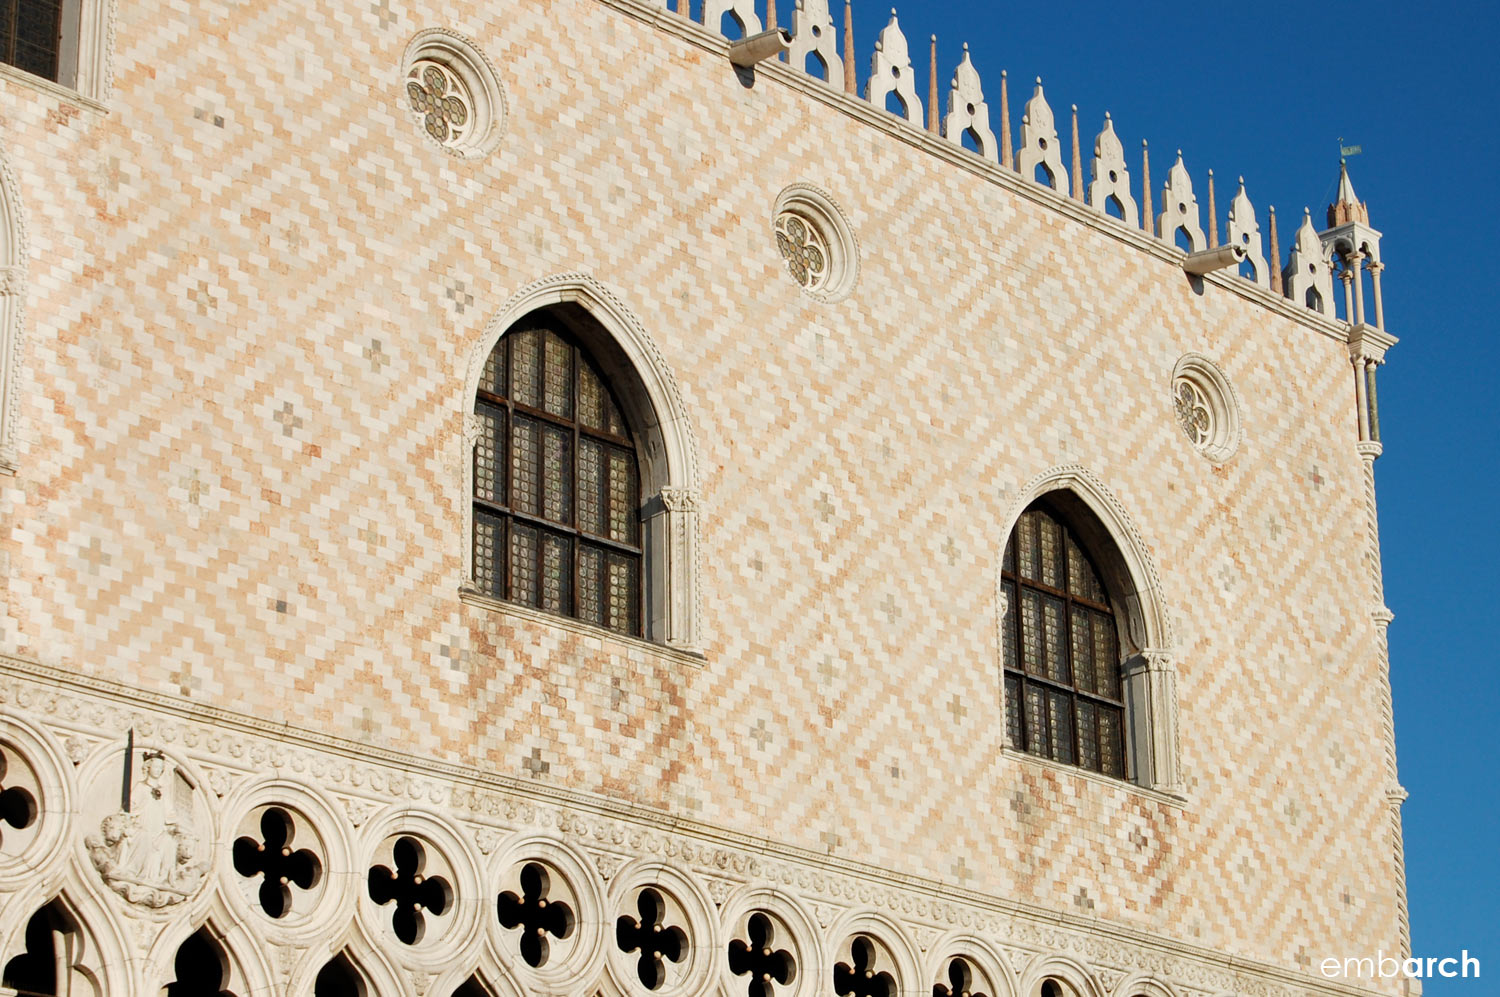 Palazzo Ducale - exterior detail